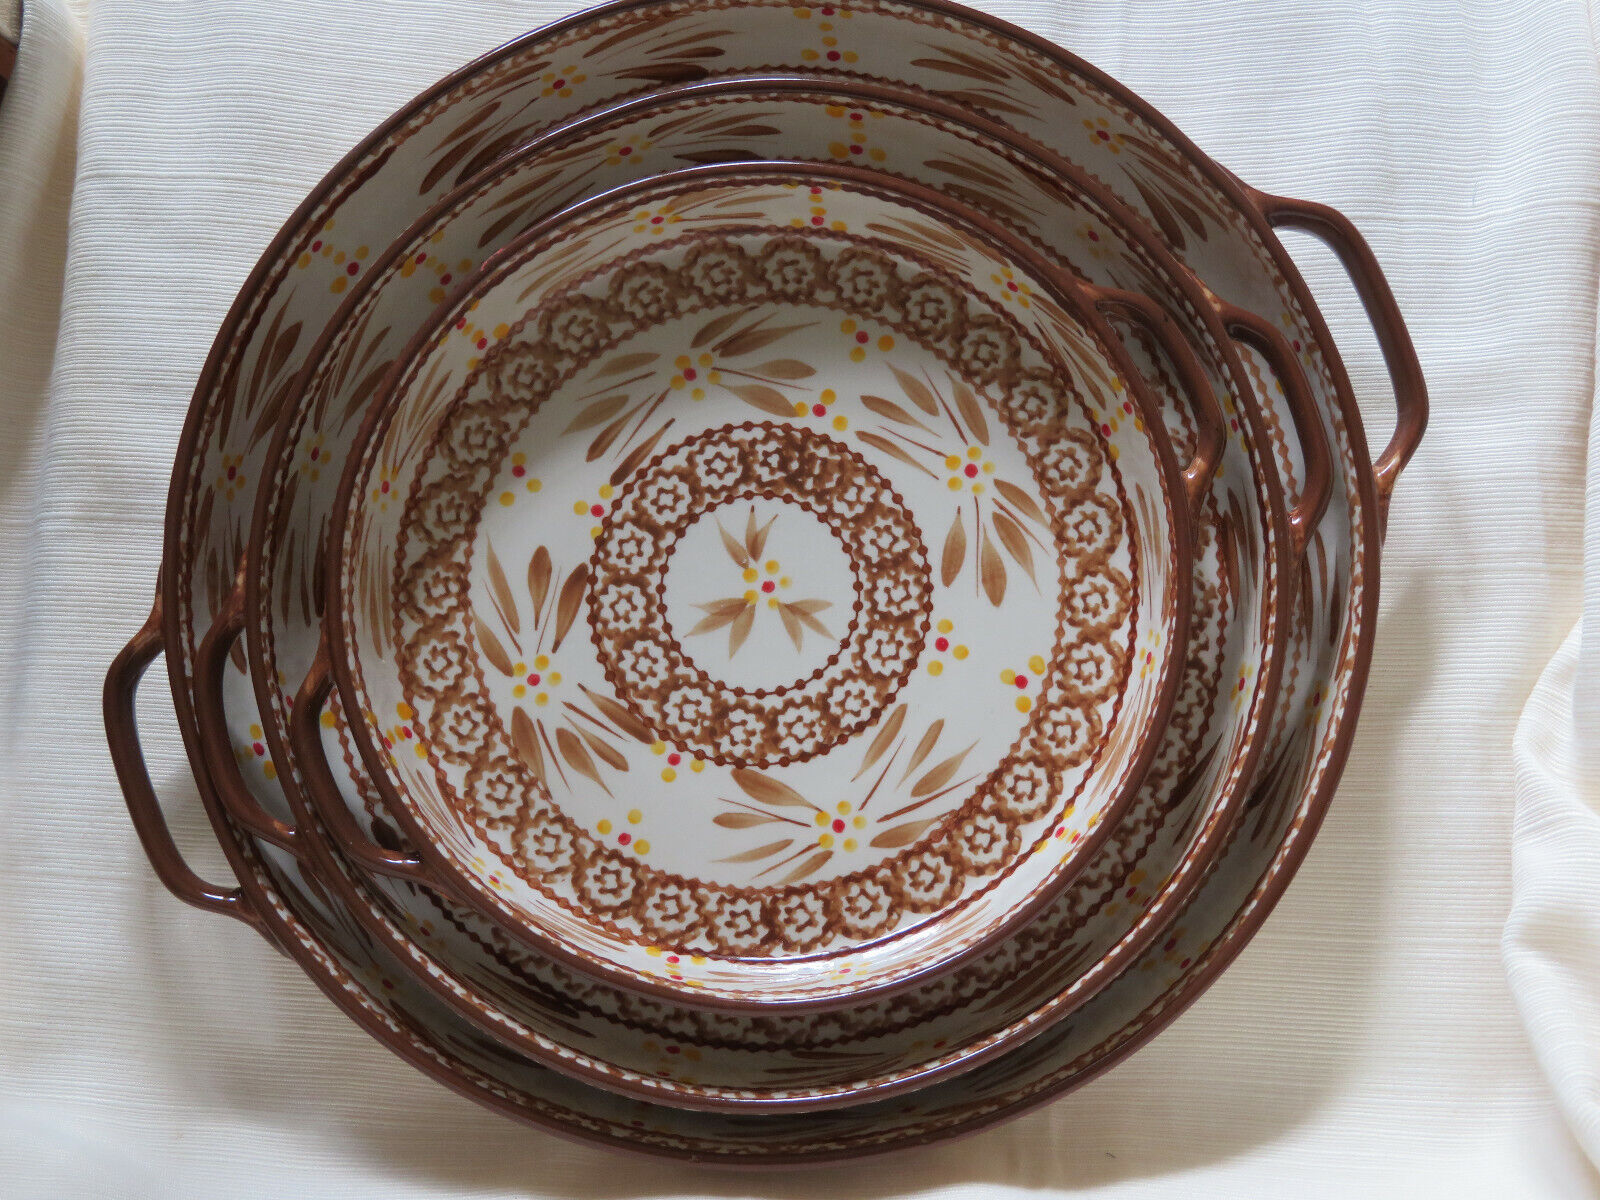 3 Temp-tations Round Platter Serving Tray 1, 1.5, 2.5 QT Old World Brown - $75.00